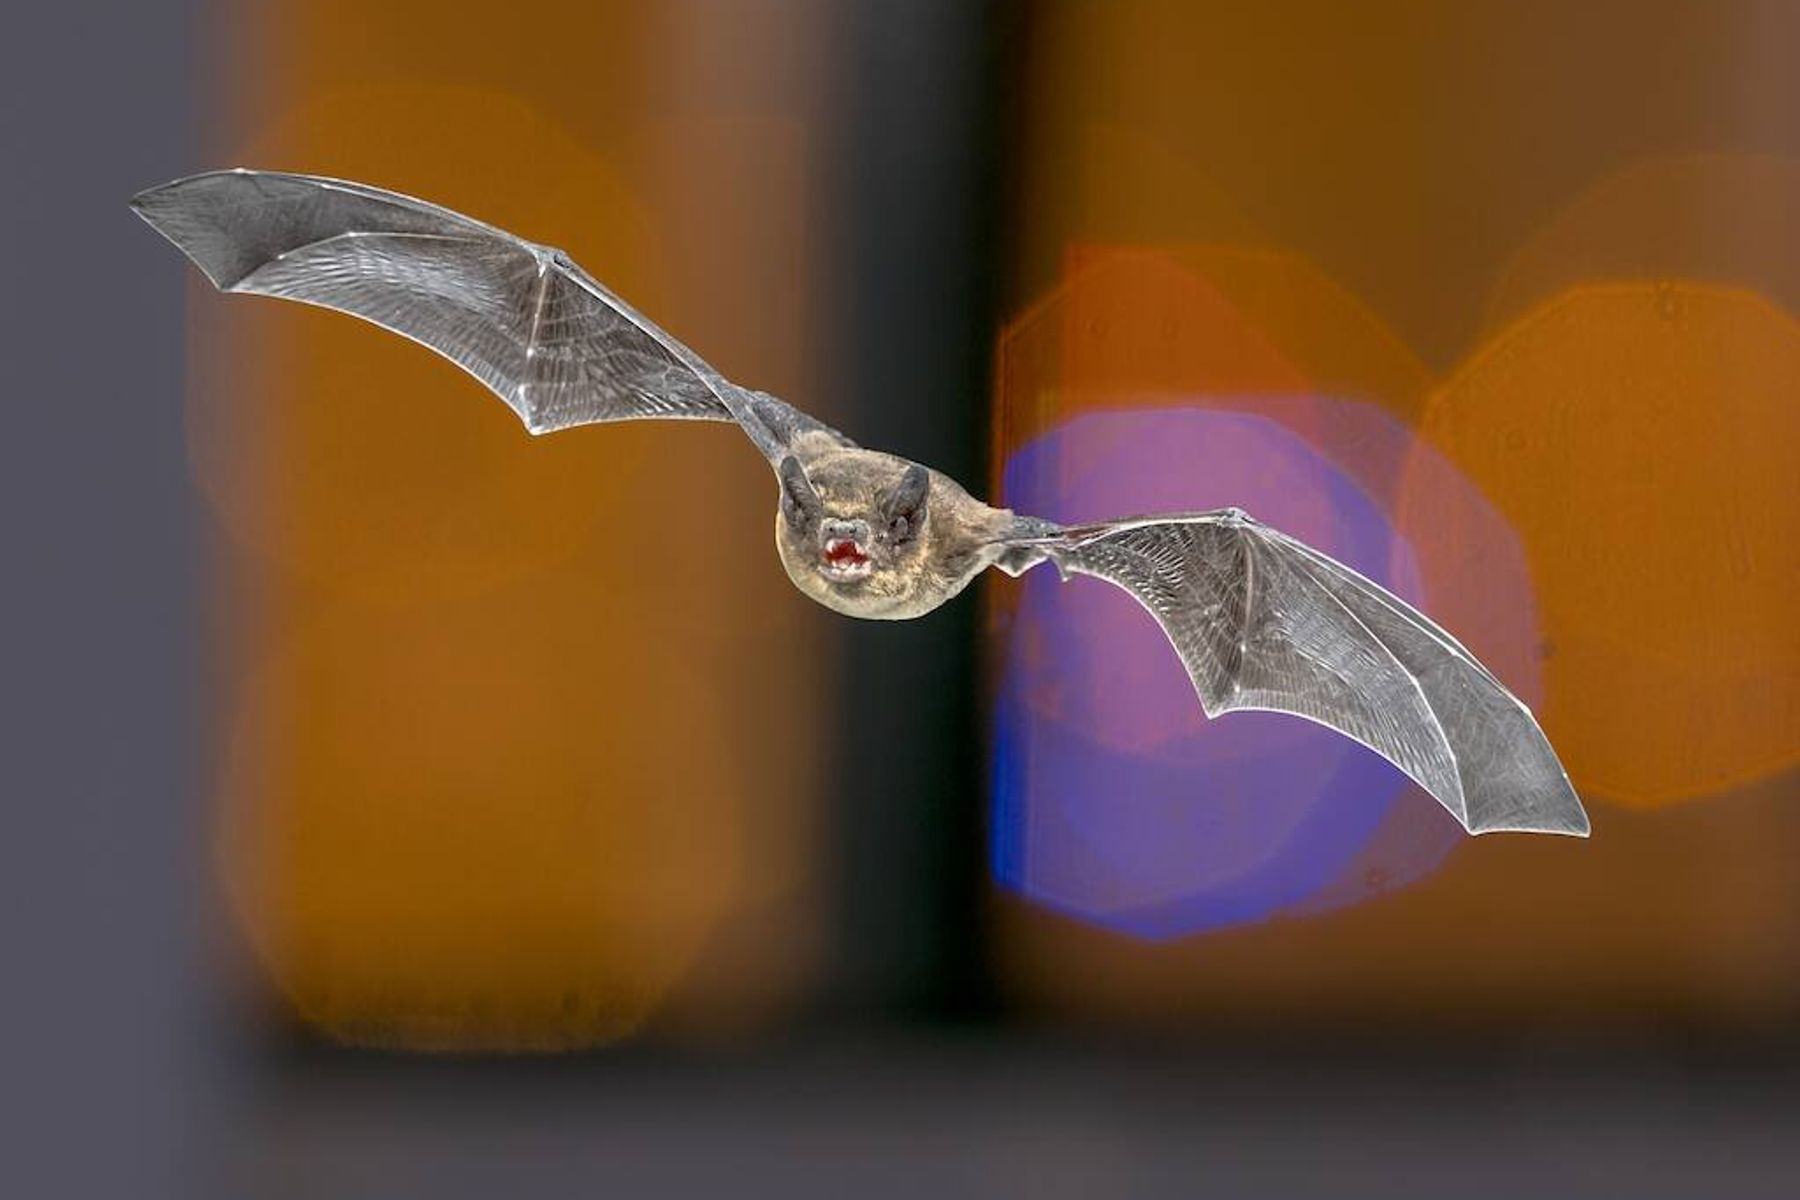 a picture of a bat in front of a blurry background